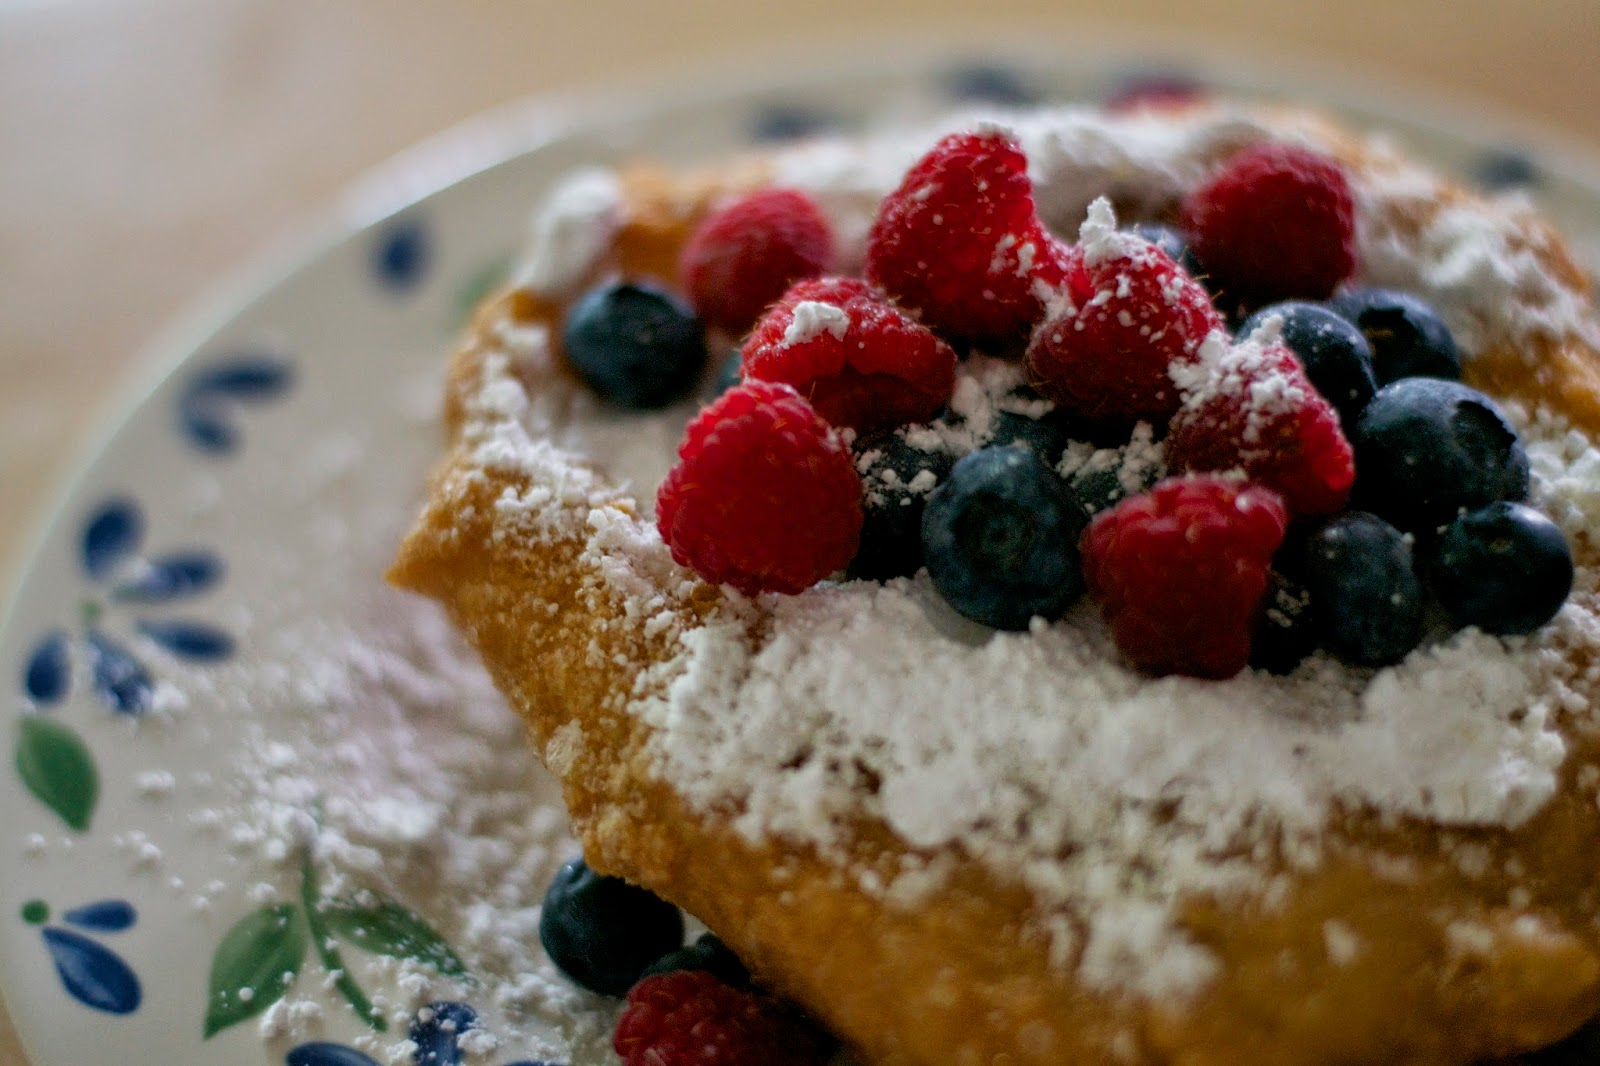 Always time for a homemade fried dough break with fresh, local berries.